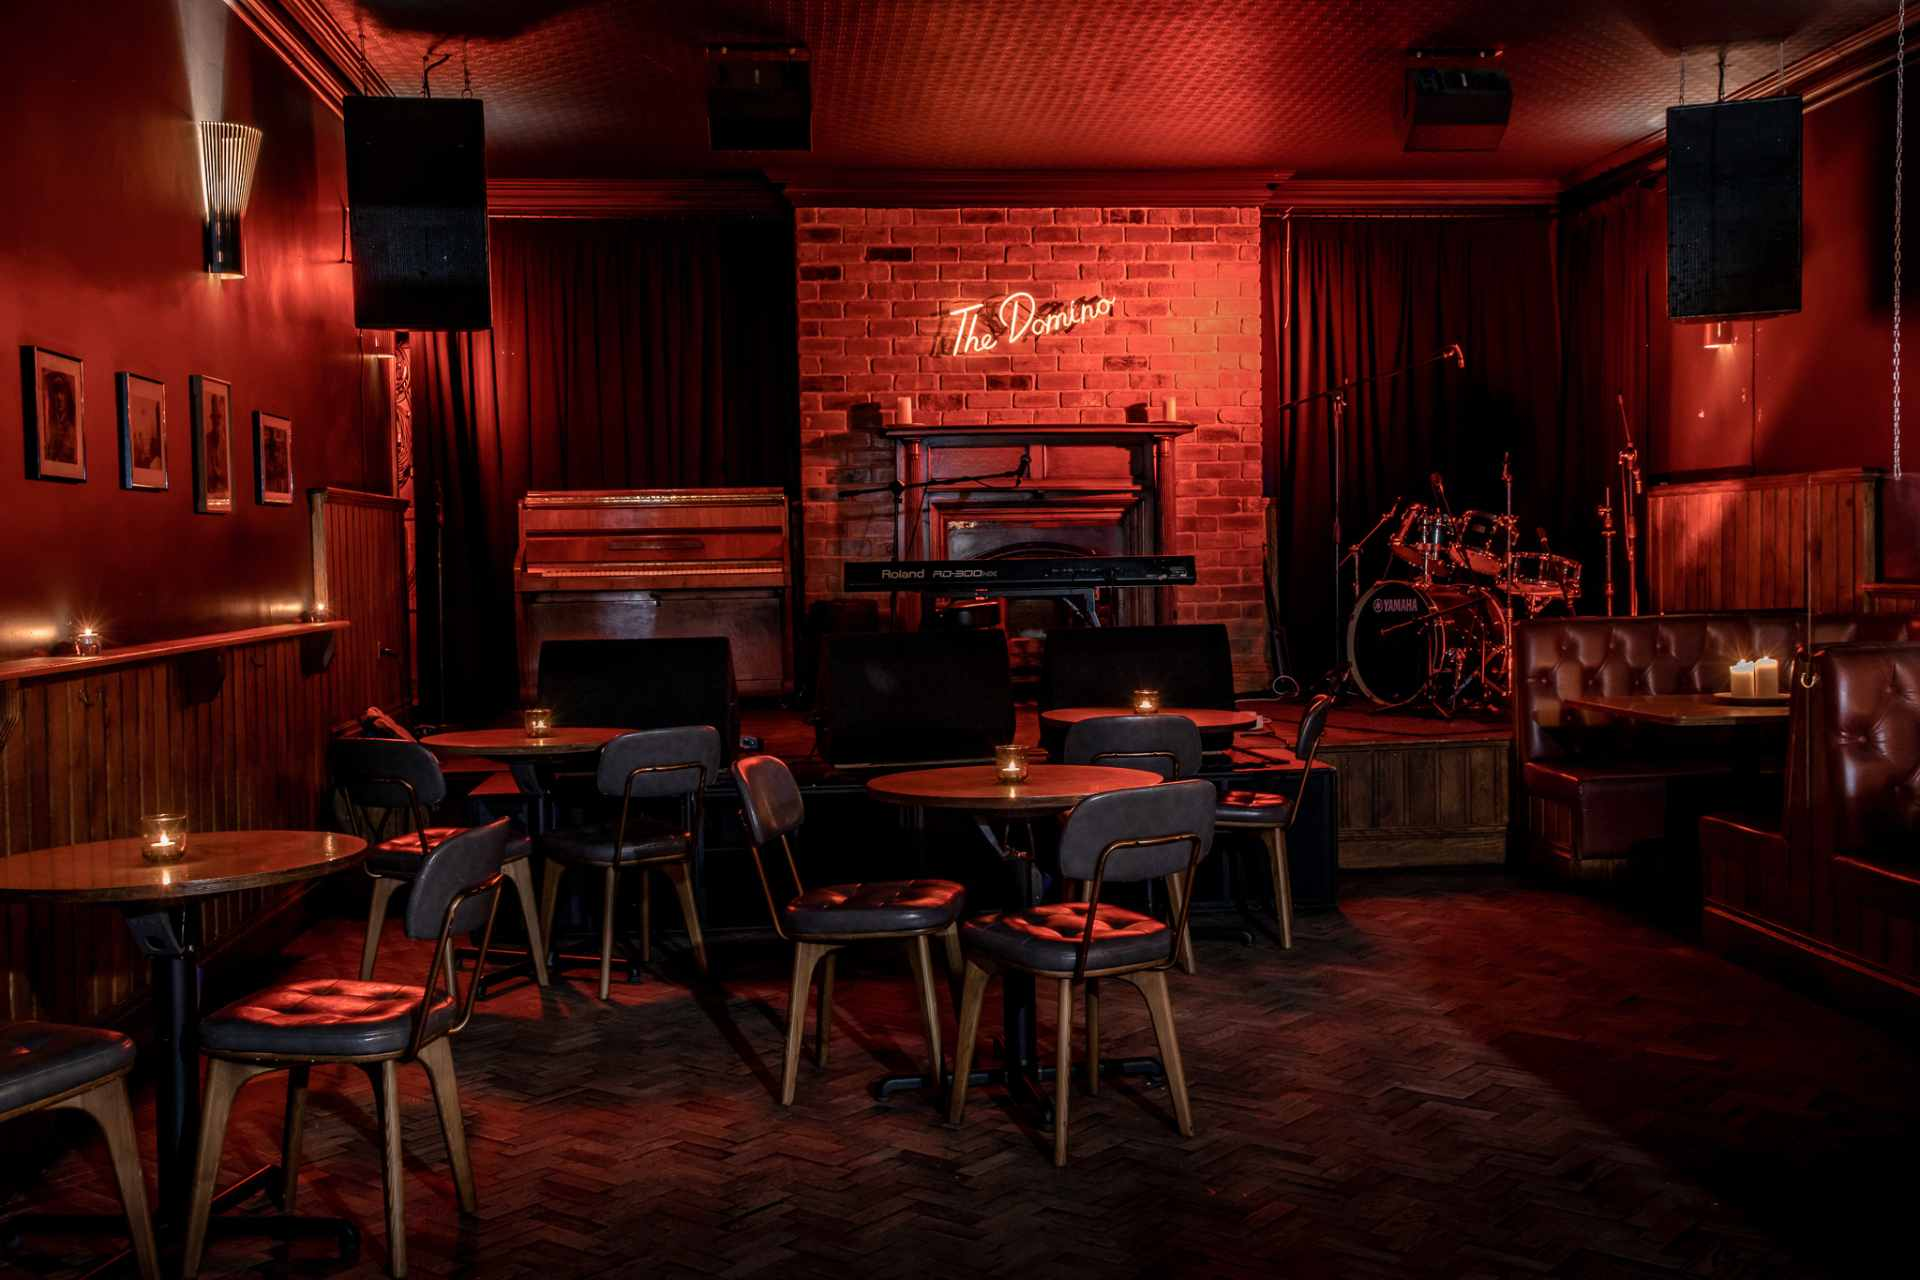 the-domino-jazz-bar-lit-up-in-red-at-night-date-ideas-leeds